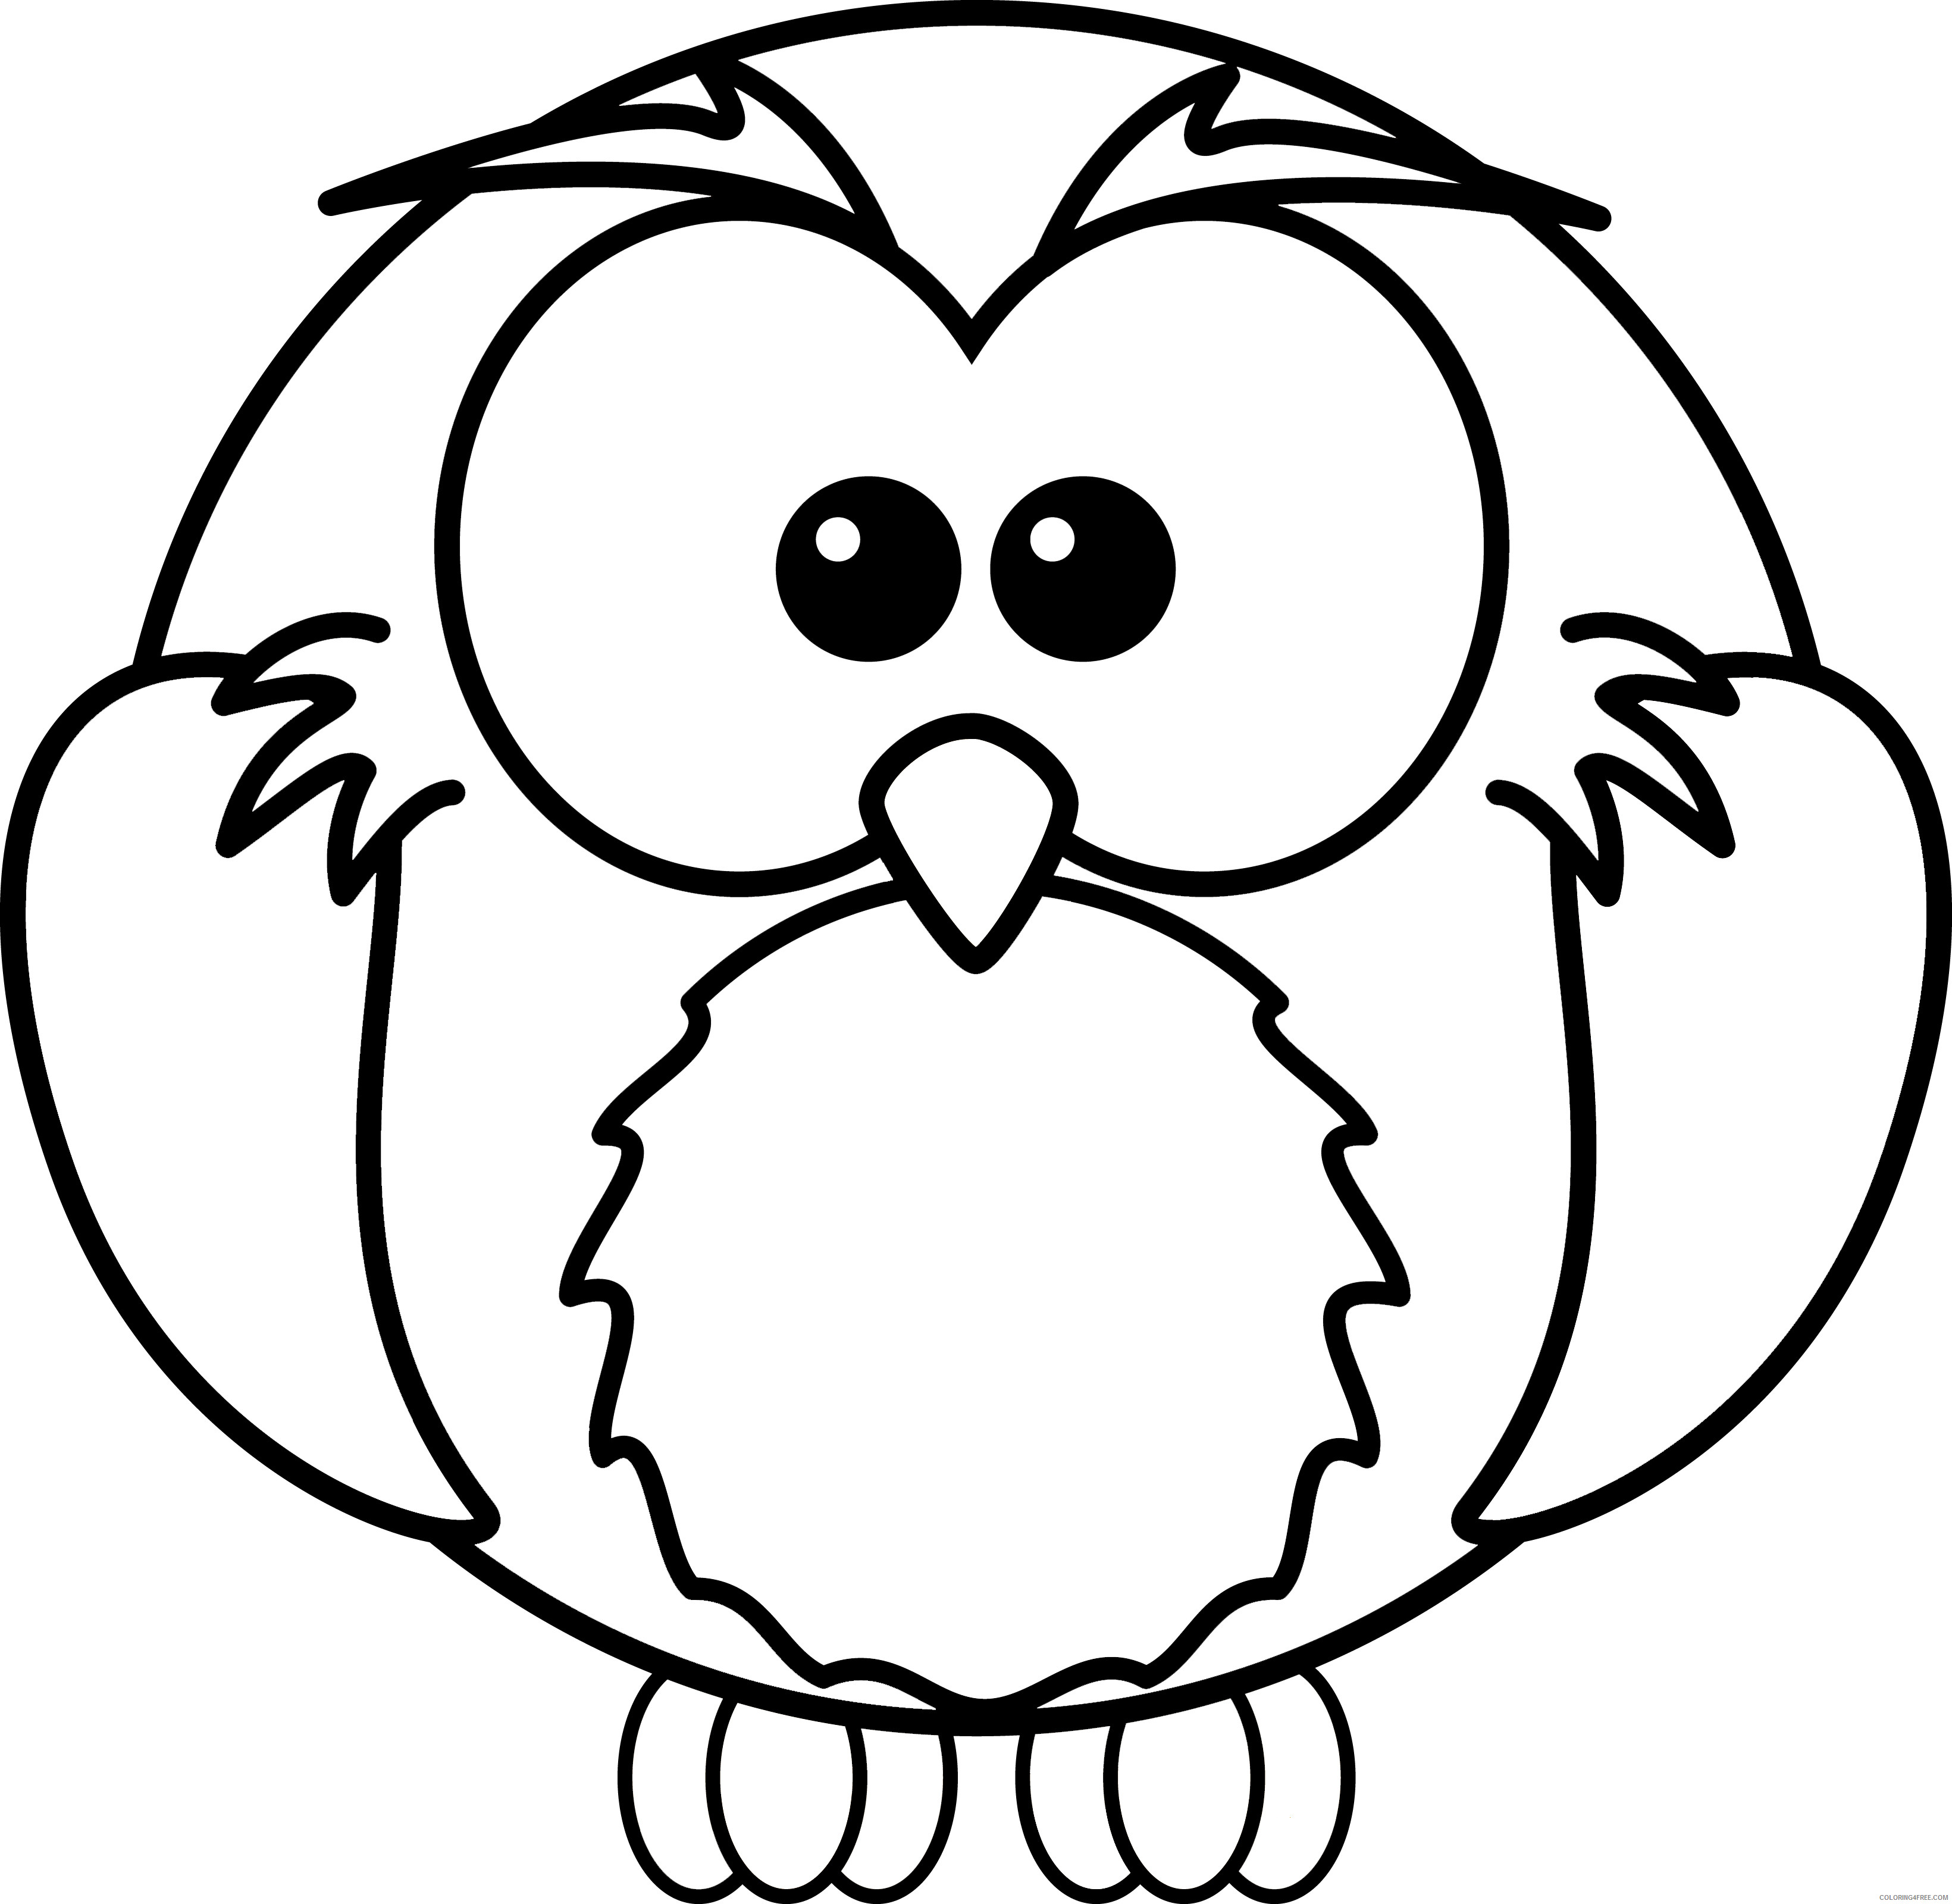 Owl Coloring Pages Coloring Pages owl 1 Printable Coloring4free